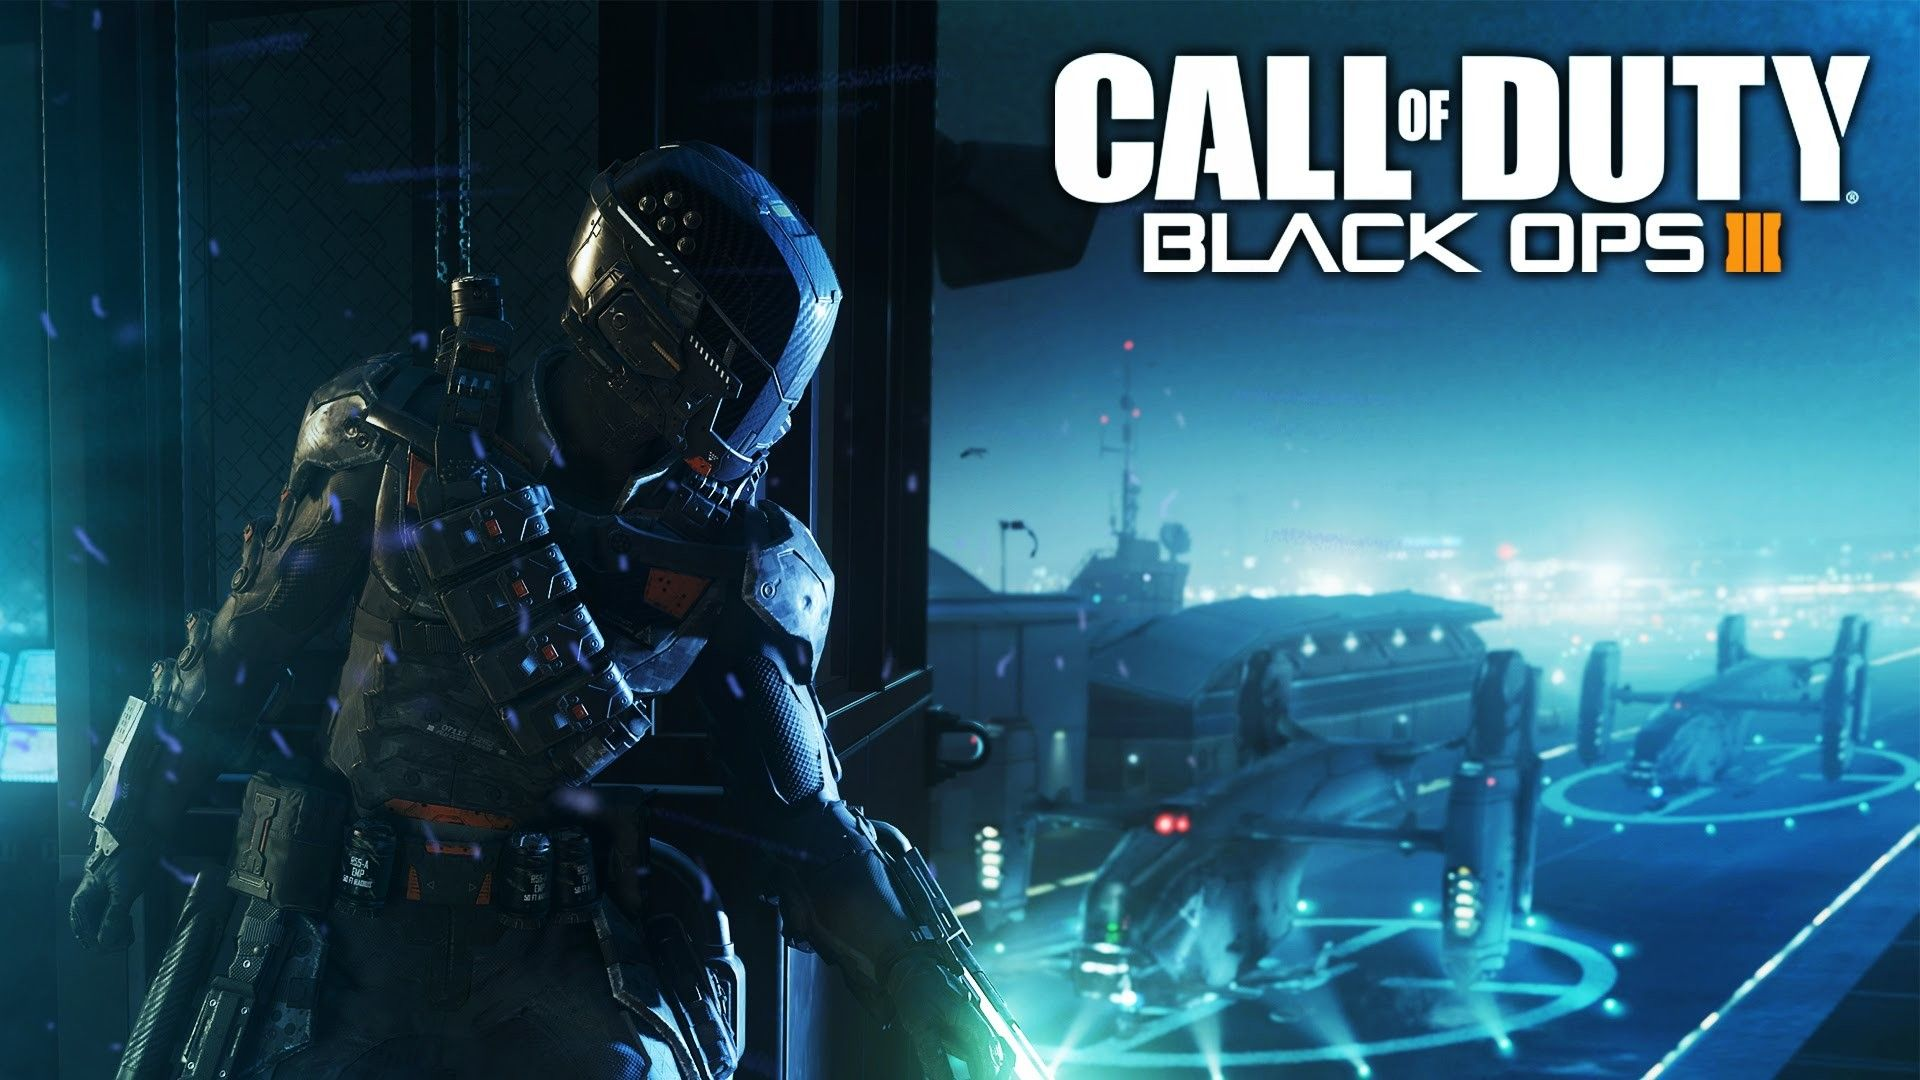 Call Of Duty Black Ops 3 Wallpapers 1080p Festival Wallpaper Call Of Duty Black Call Of Duty Black Ops Iii Call Of Duty